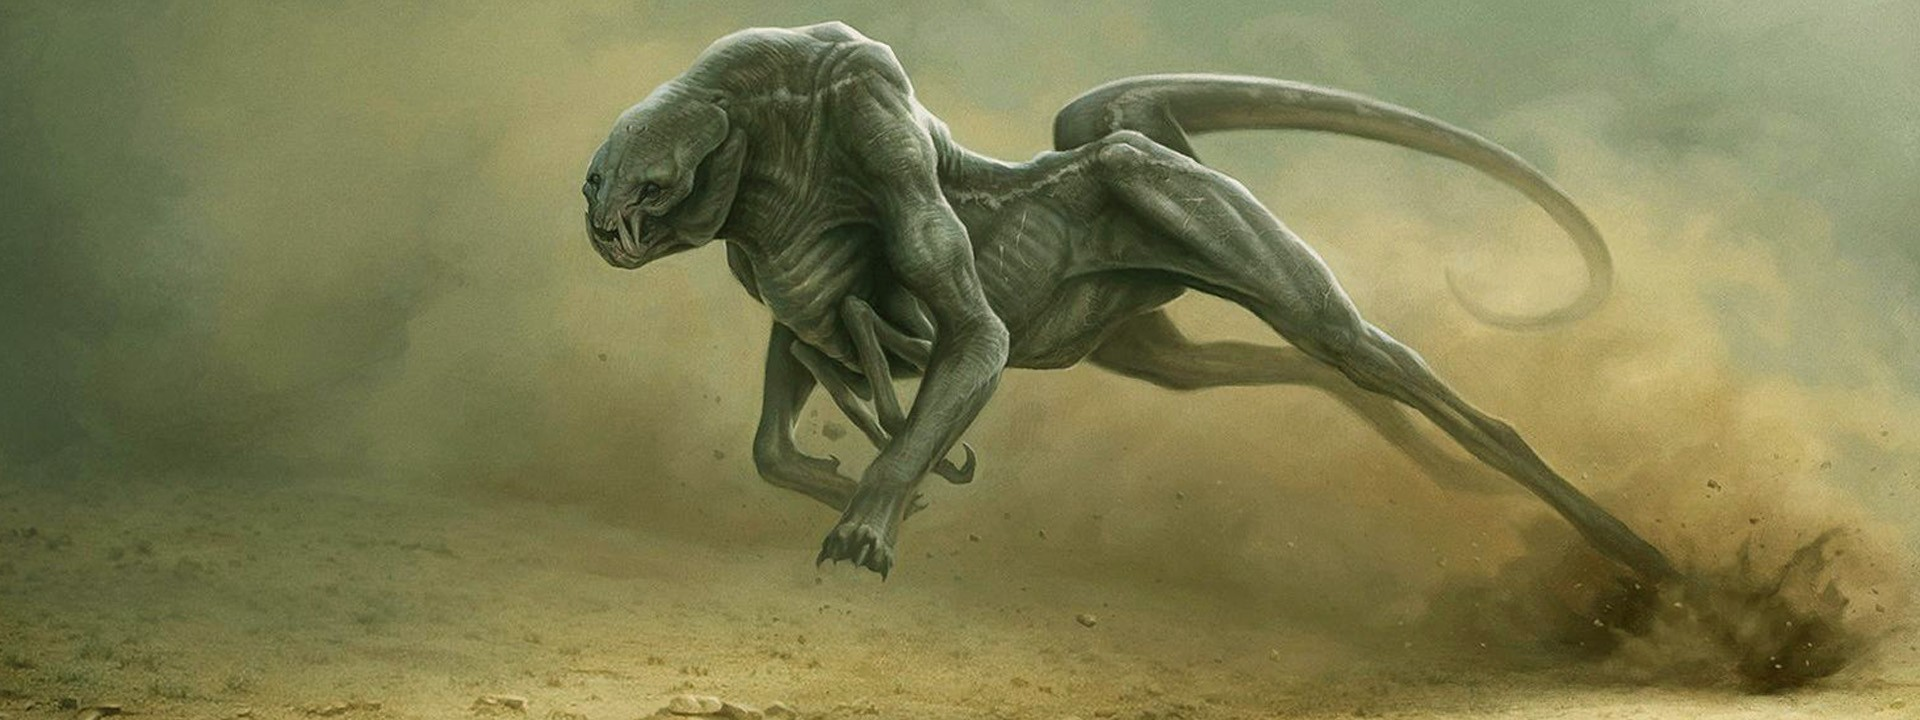 RS_Slide_X452_Creature_v01